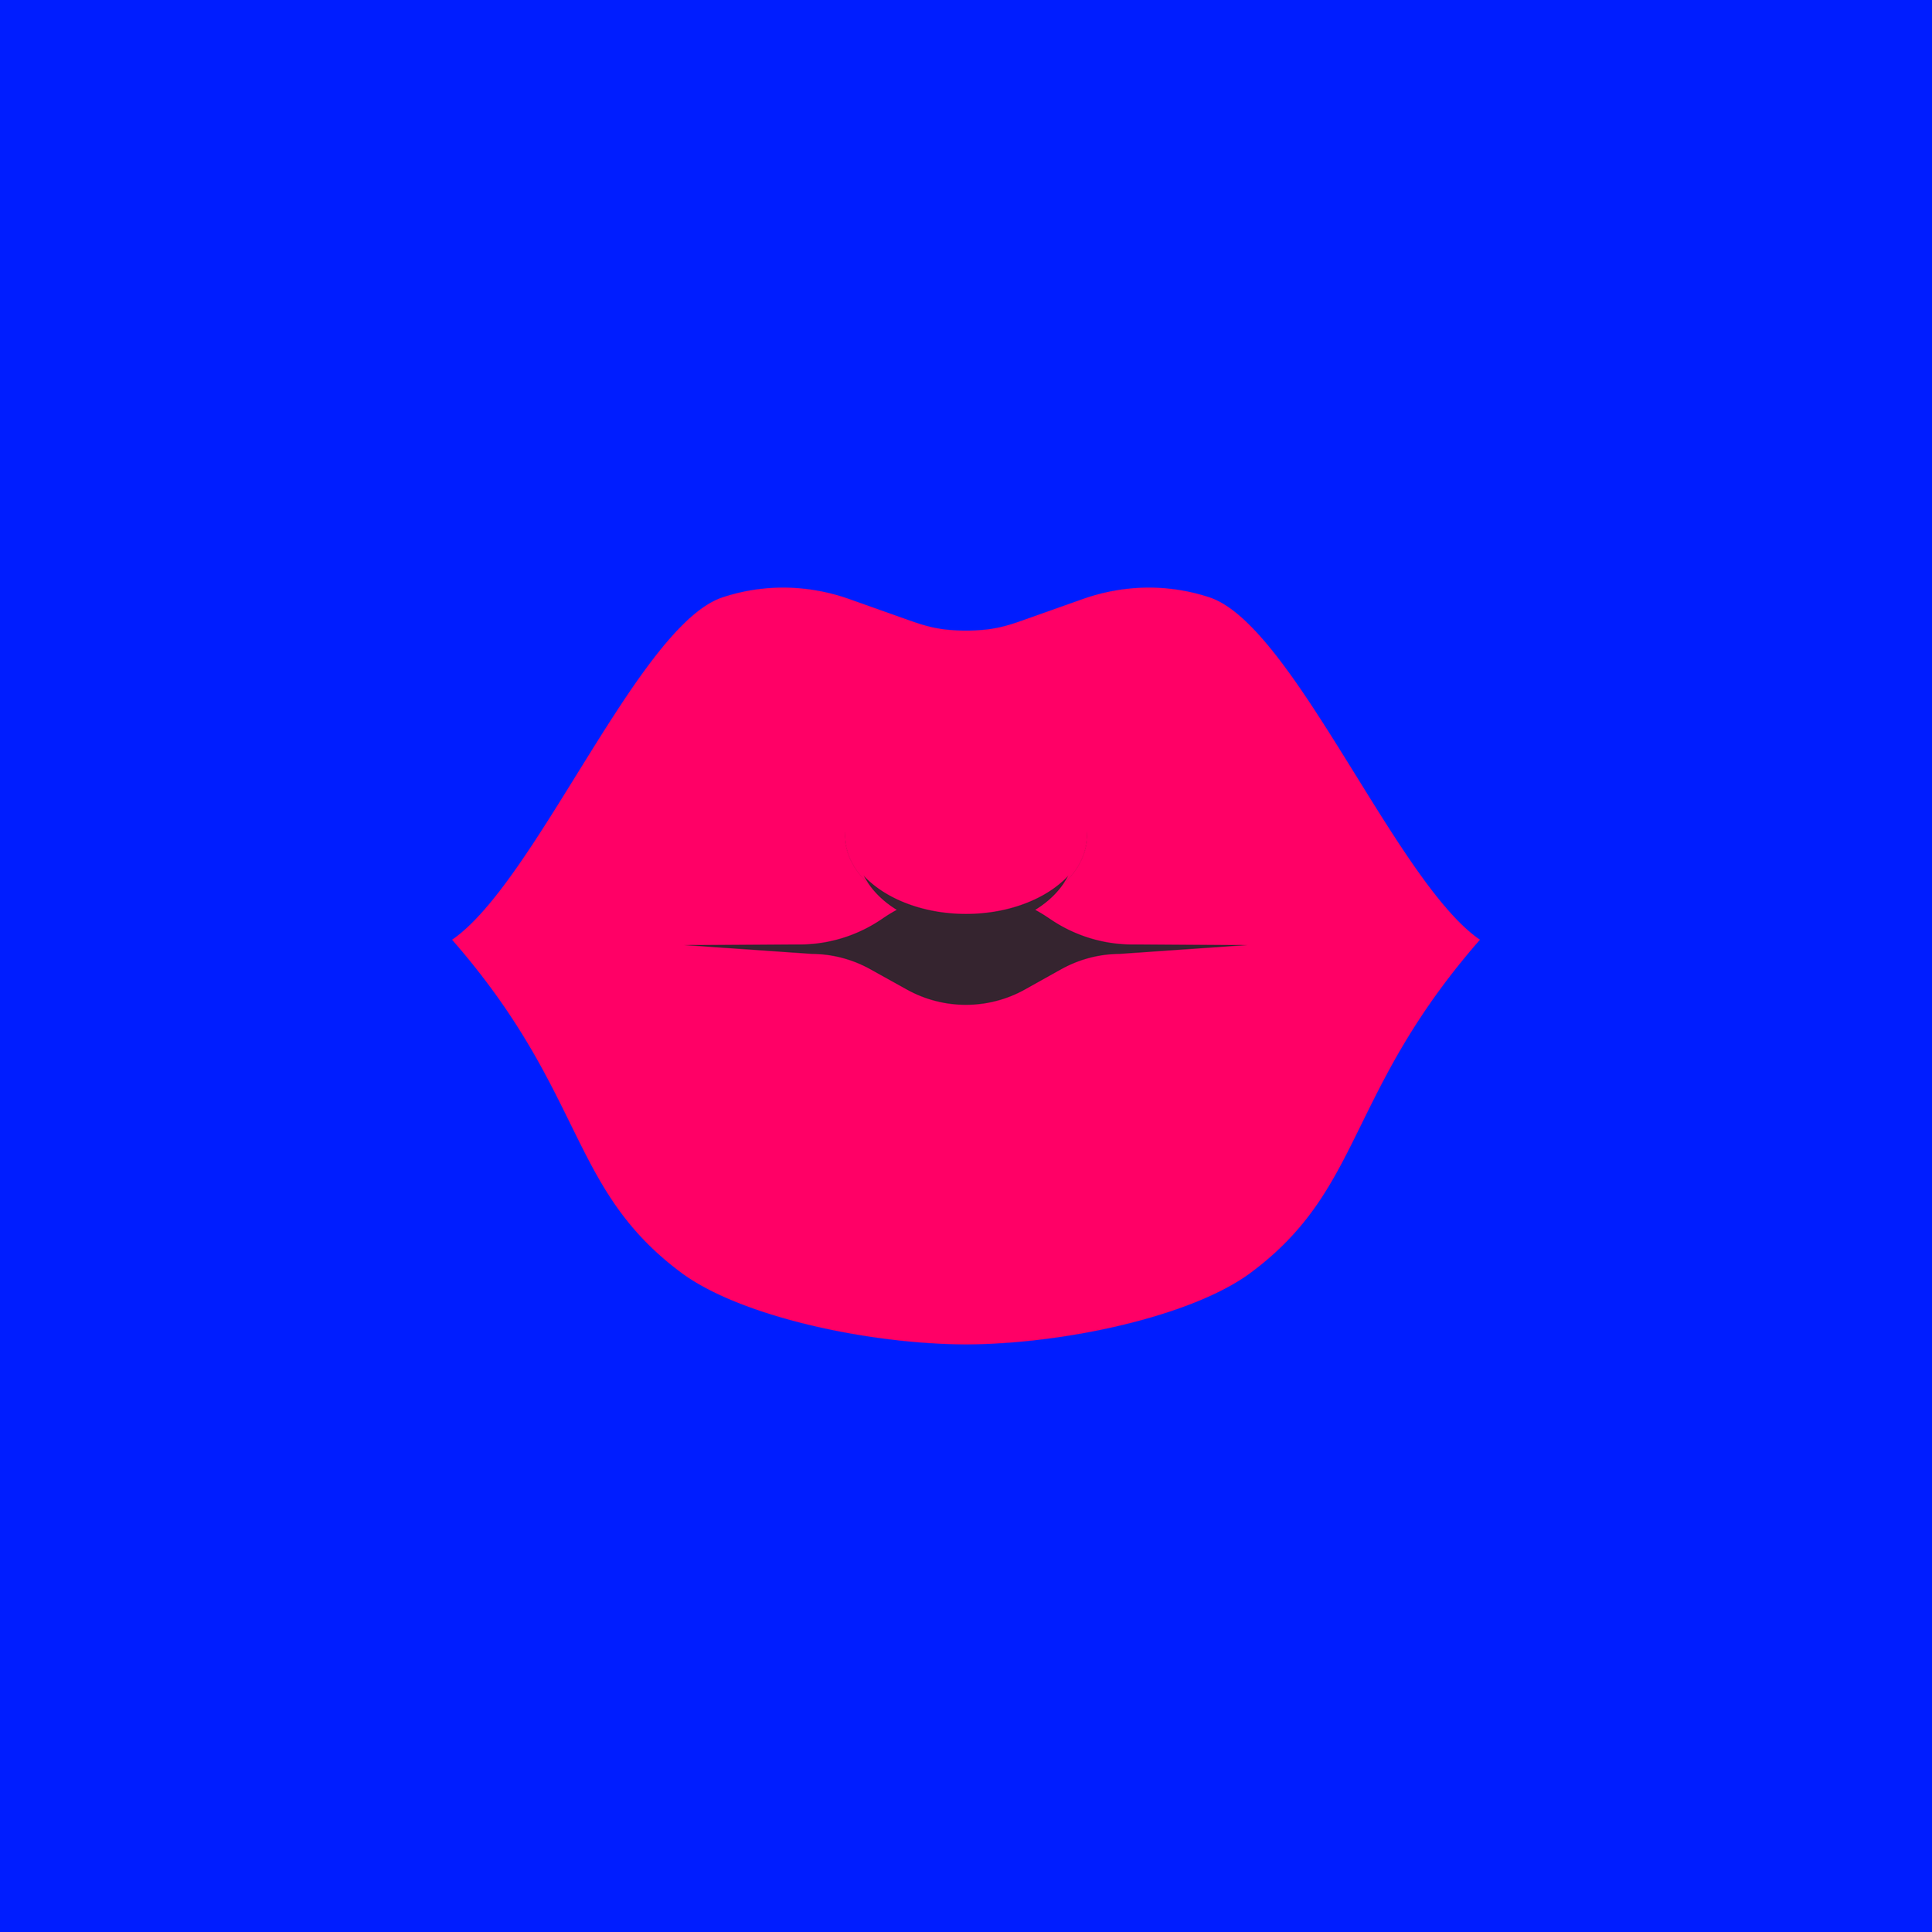 lips3.png